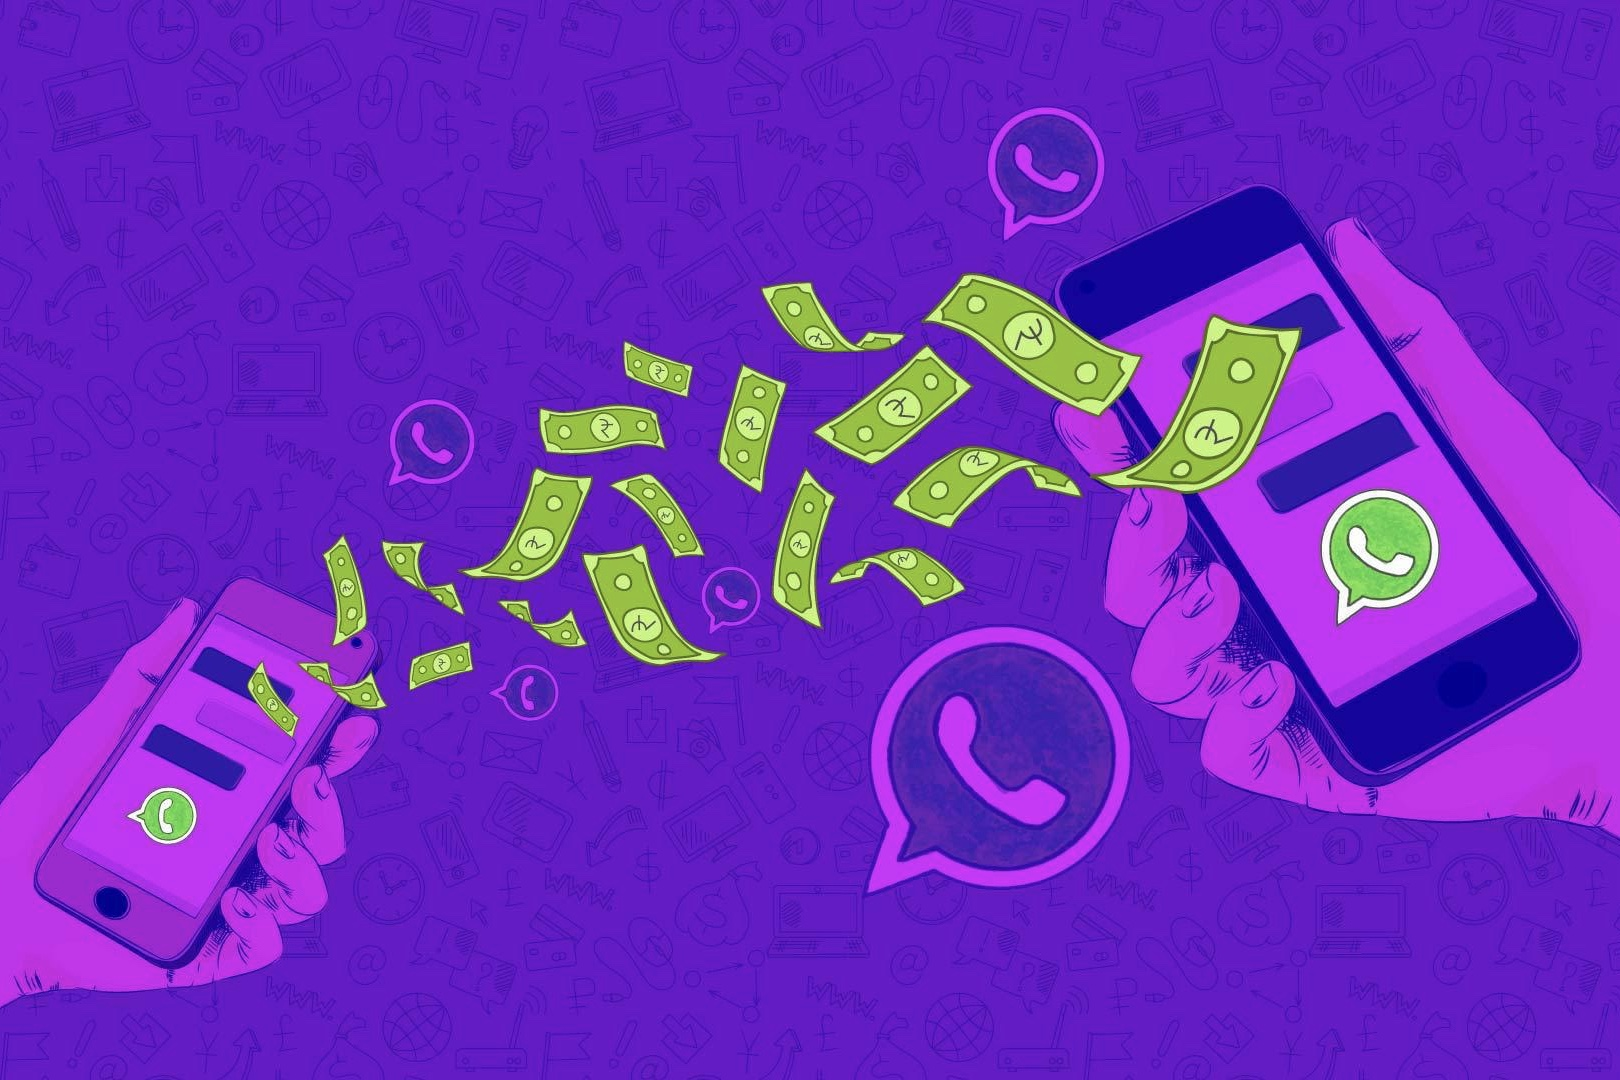 Facebook Starts Planning How To Monetize Whatsapp 1